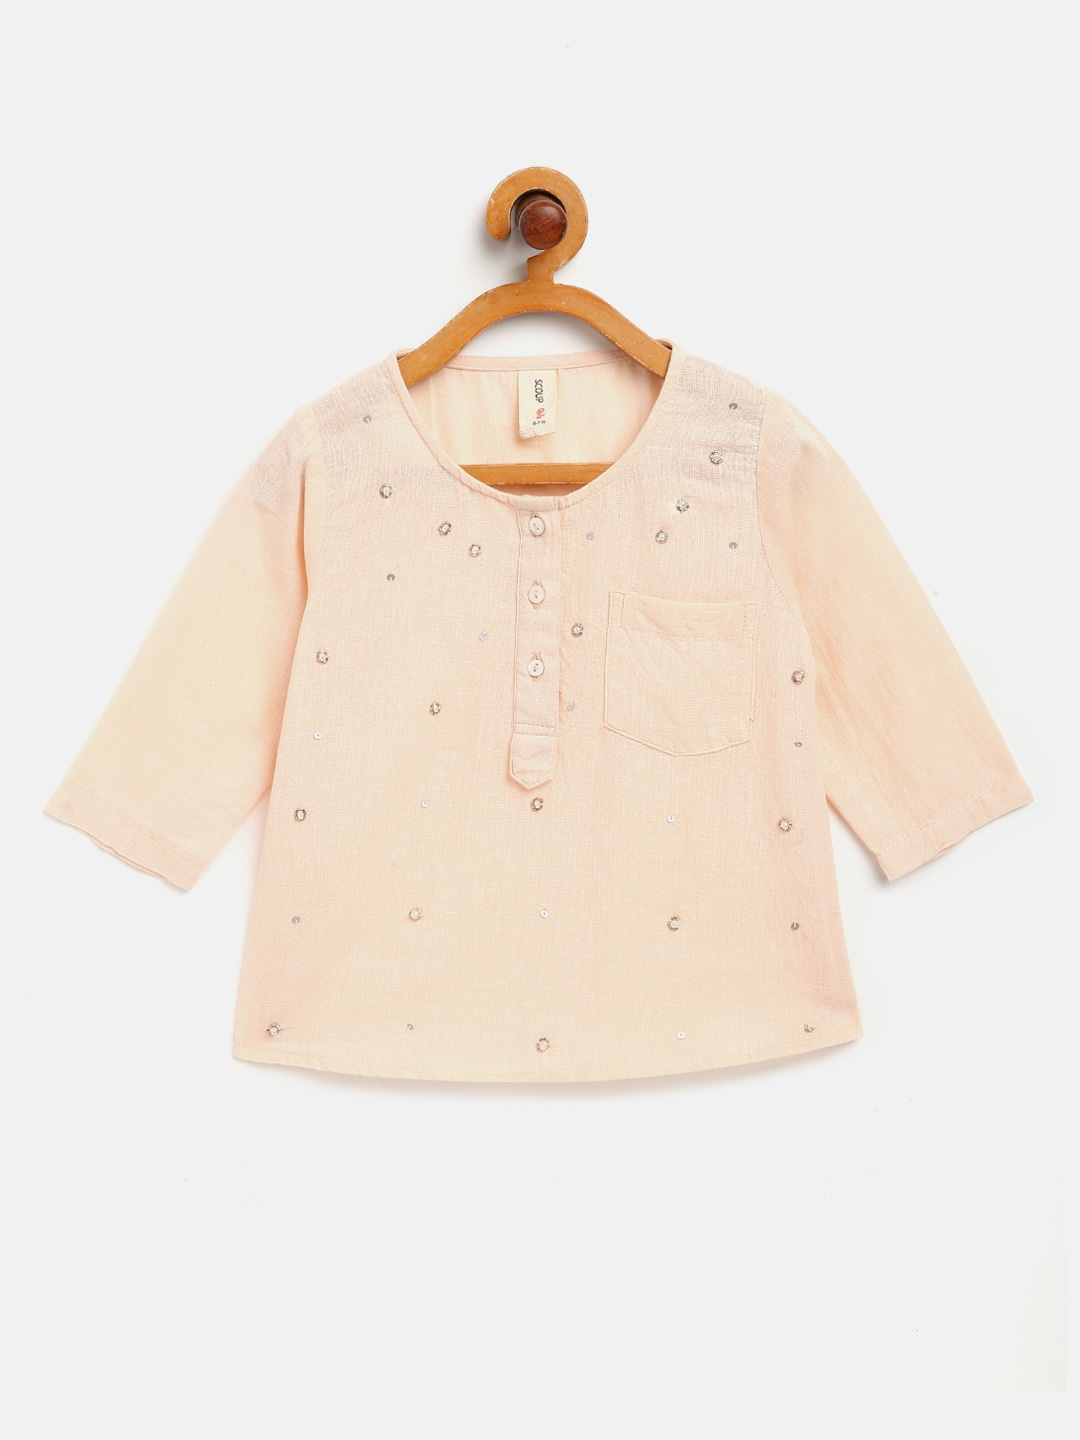 Embellished Blouse with 3/4th sleeve